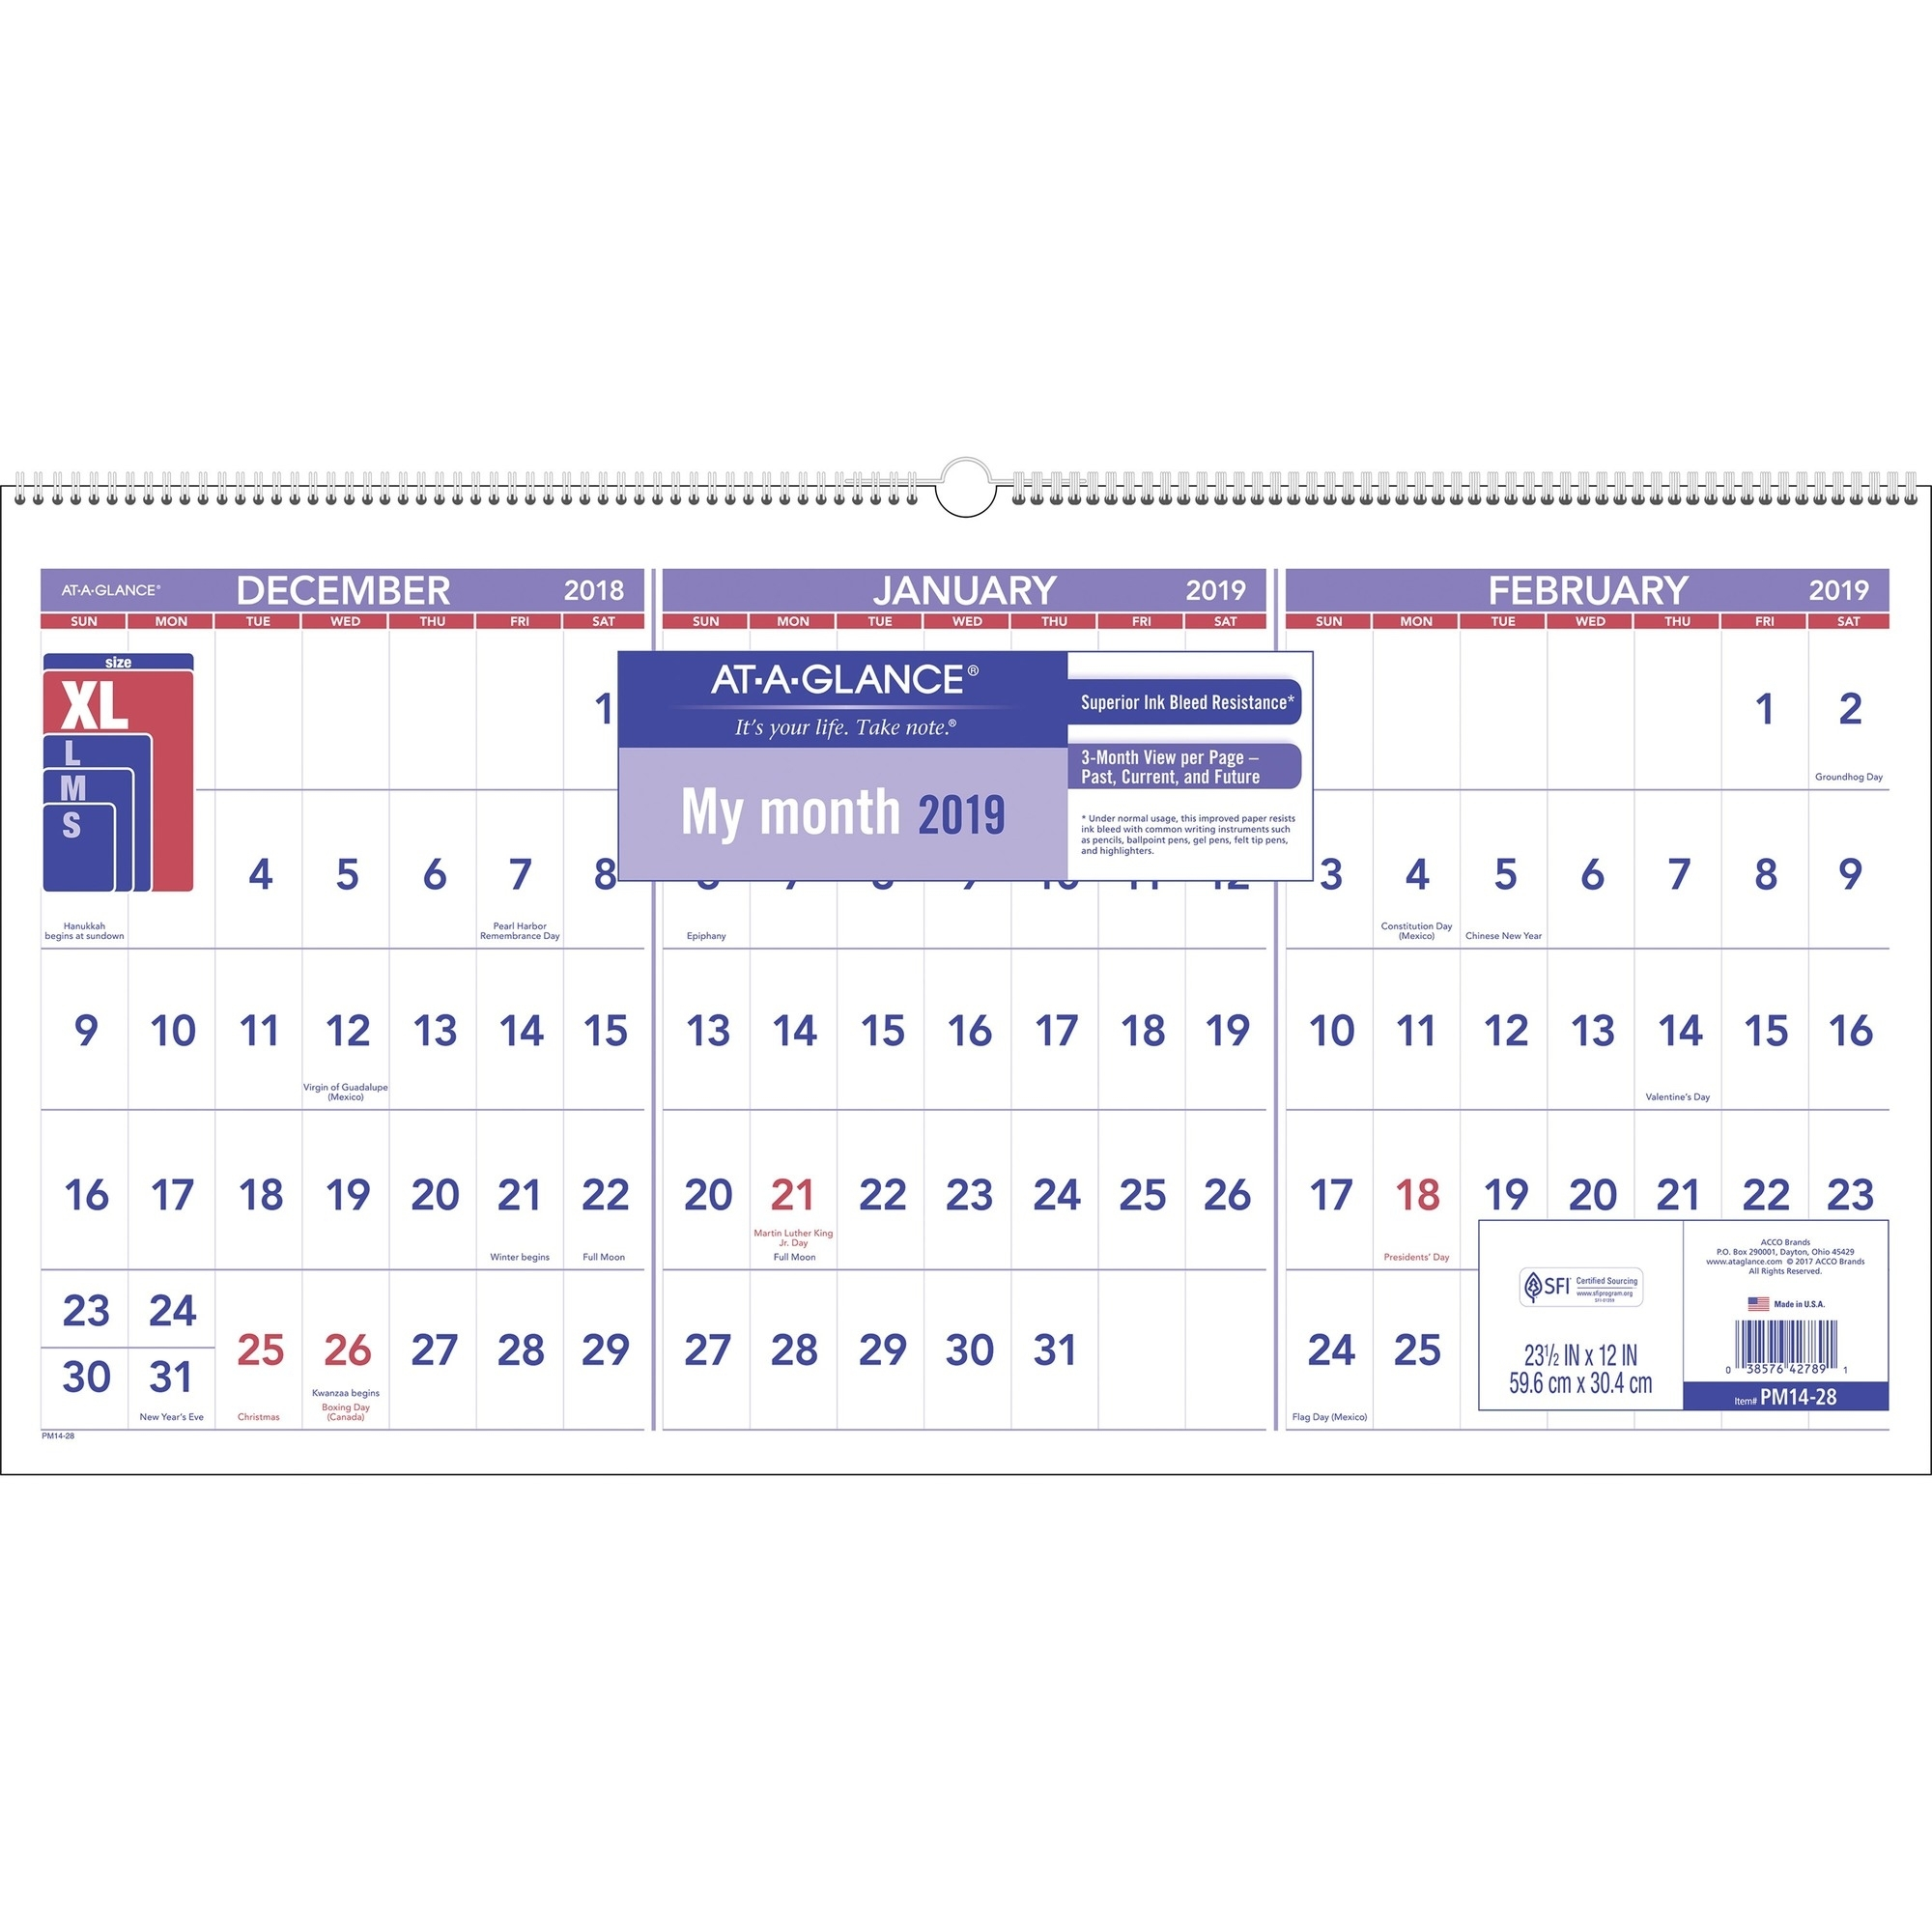 At-A-Glance 3-Month Horizontal Wall Calendar - Yes - Quarterly - 1.2 regarding Calender For Last 3 Months